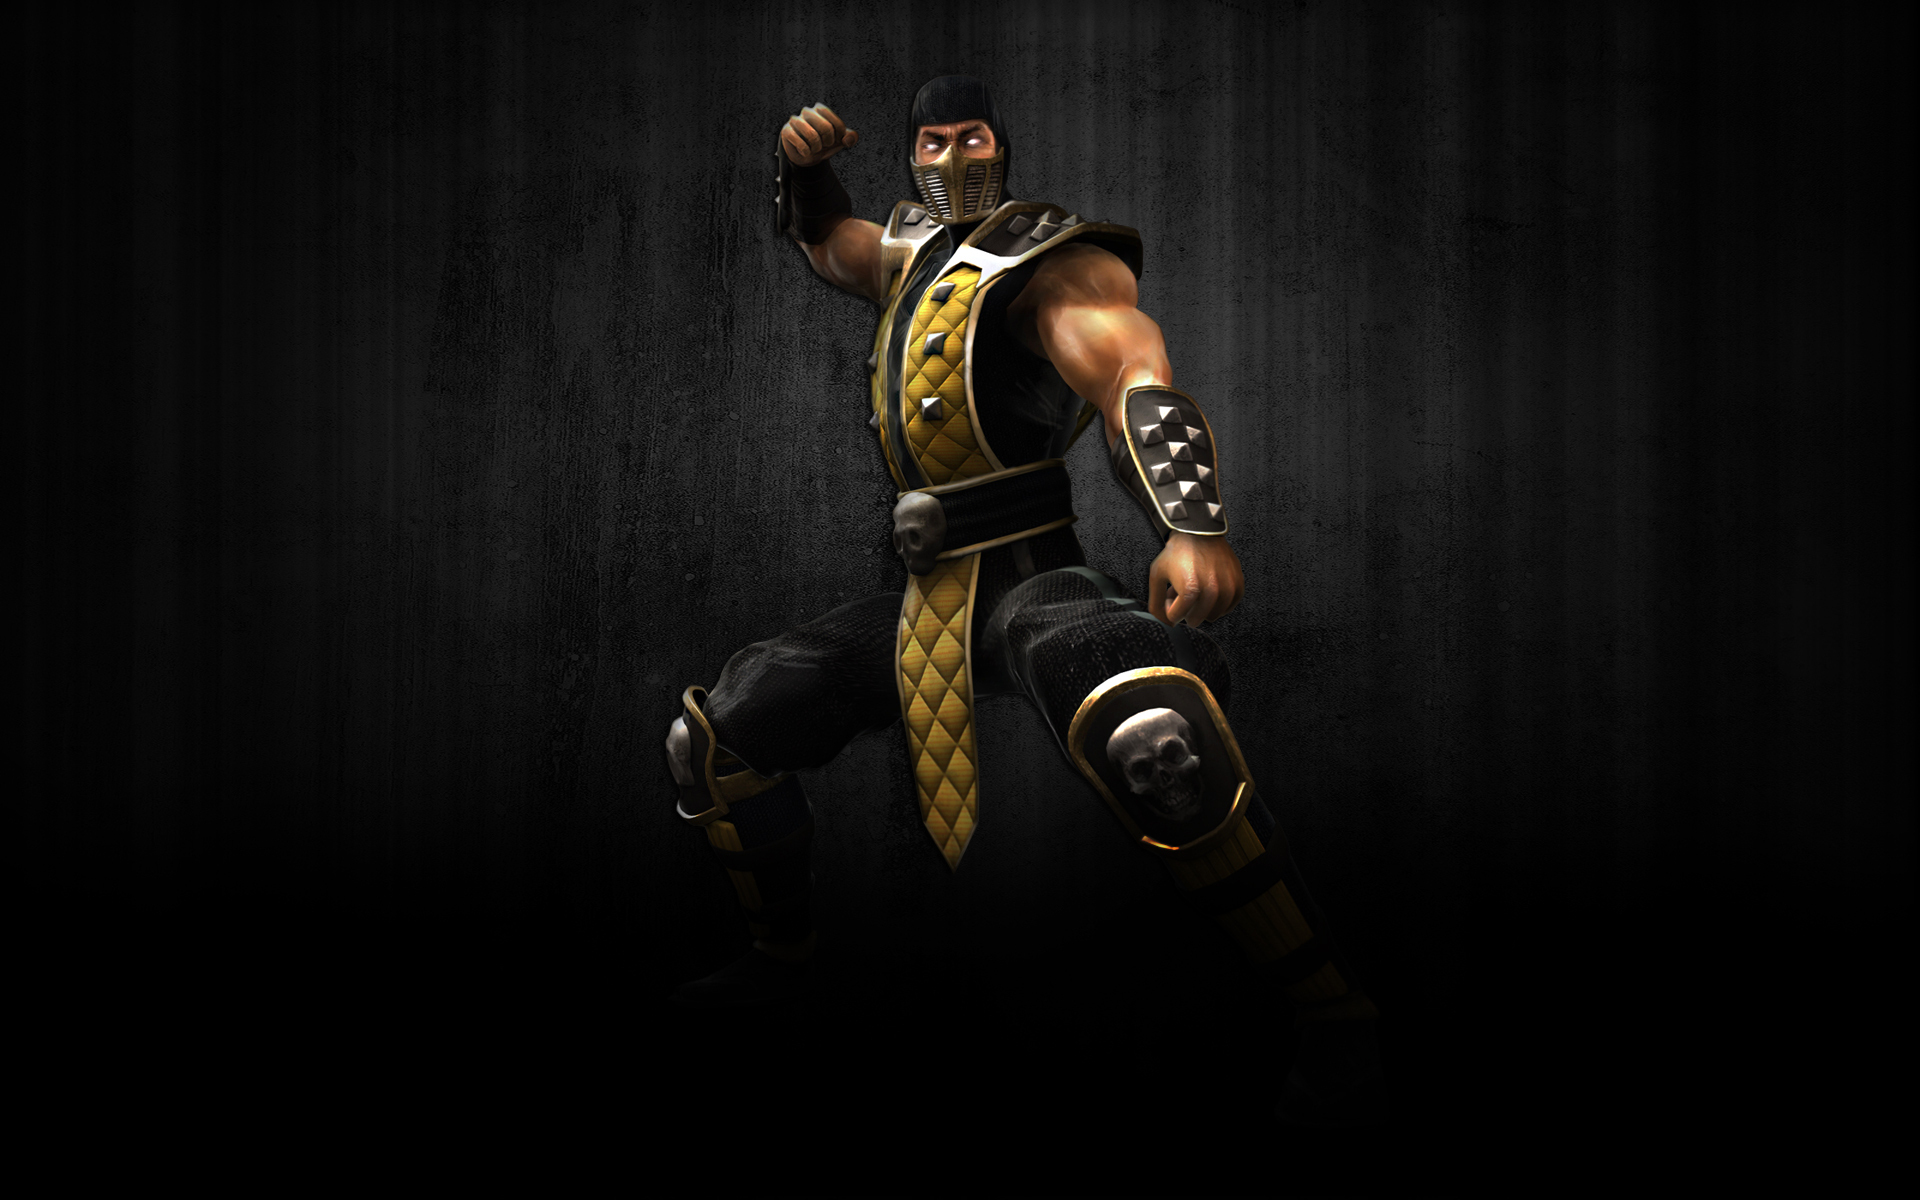 Mortal Kombat wallpaper Scorpion in the shadow